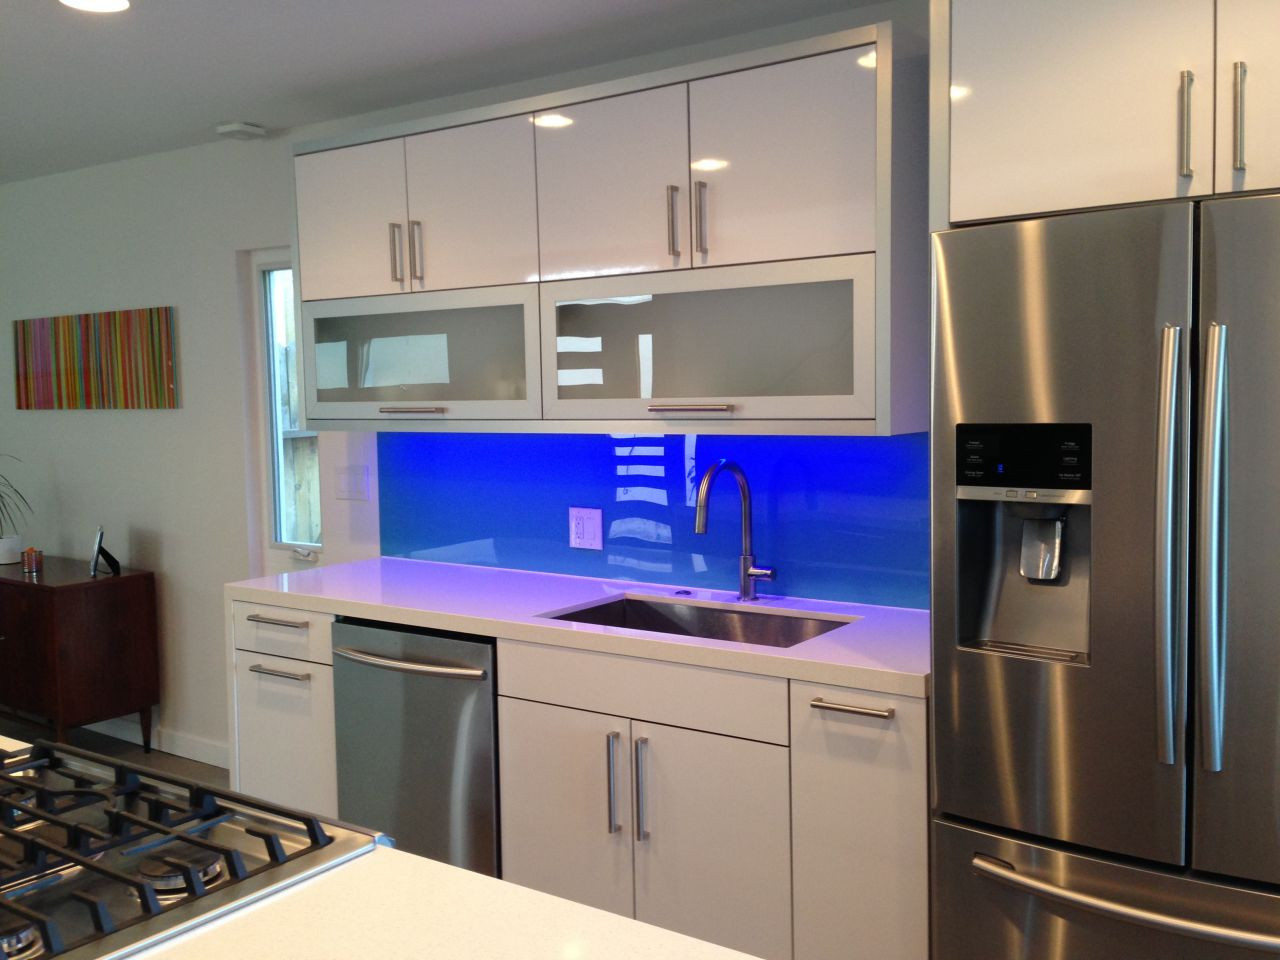 7 Frequently Asked Questions Faq About High Gloss Bath Kitchen Or Feature Wall Panels